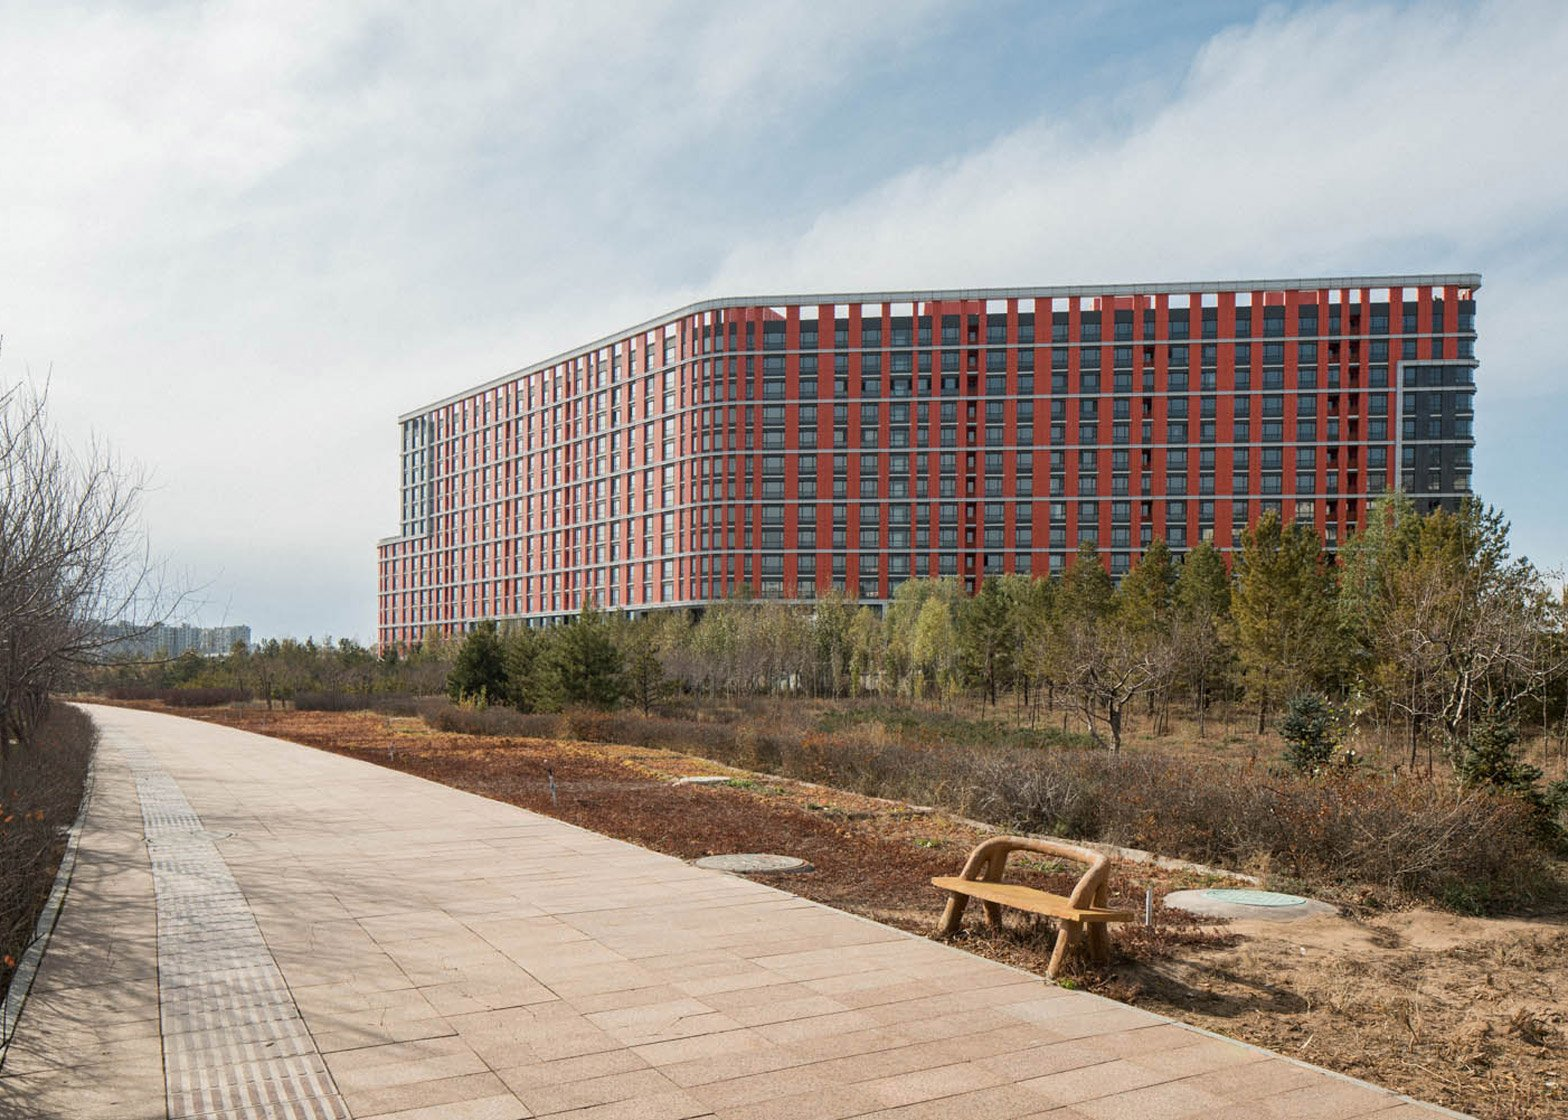 Ordos: A Failed Utopia by Raphael Olivier